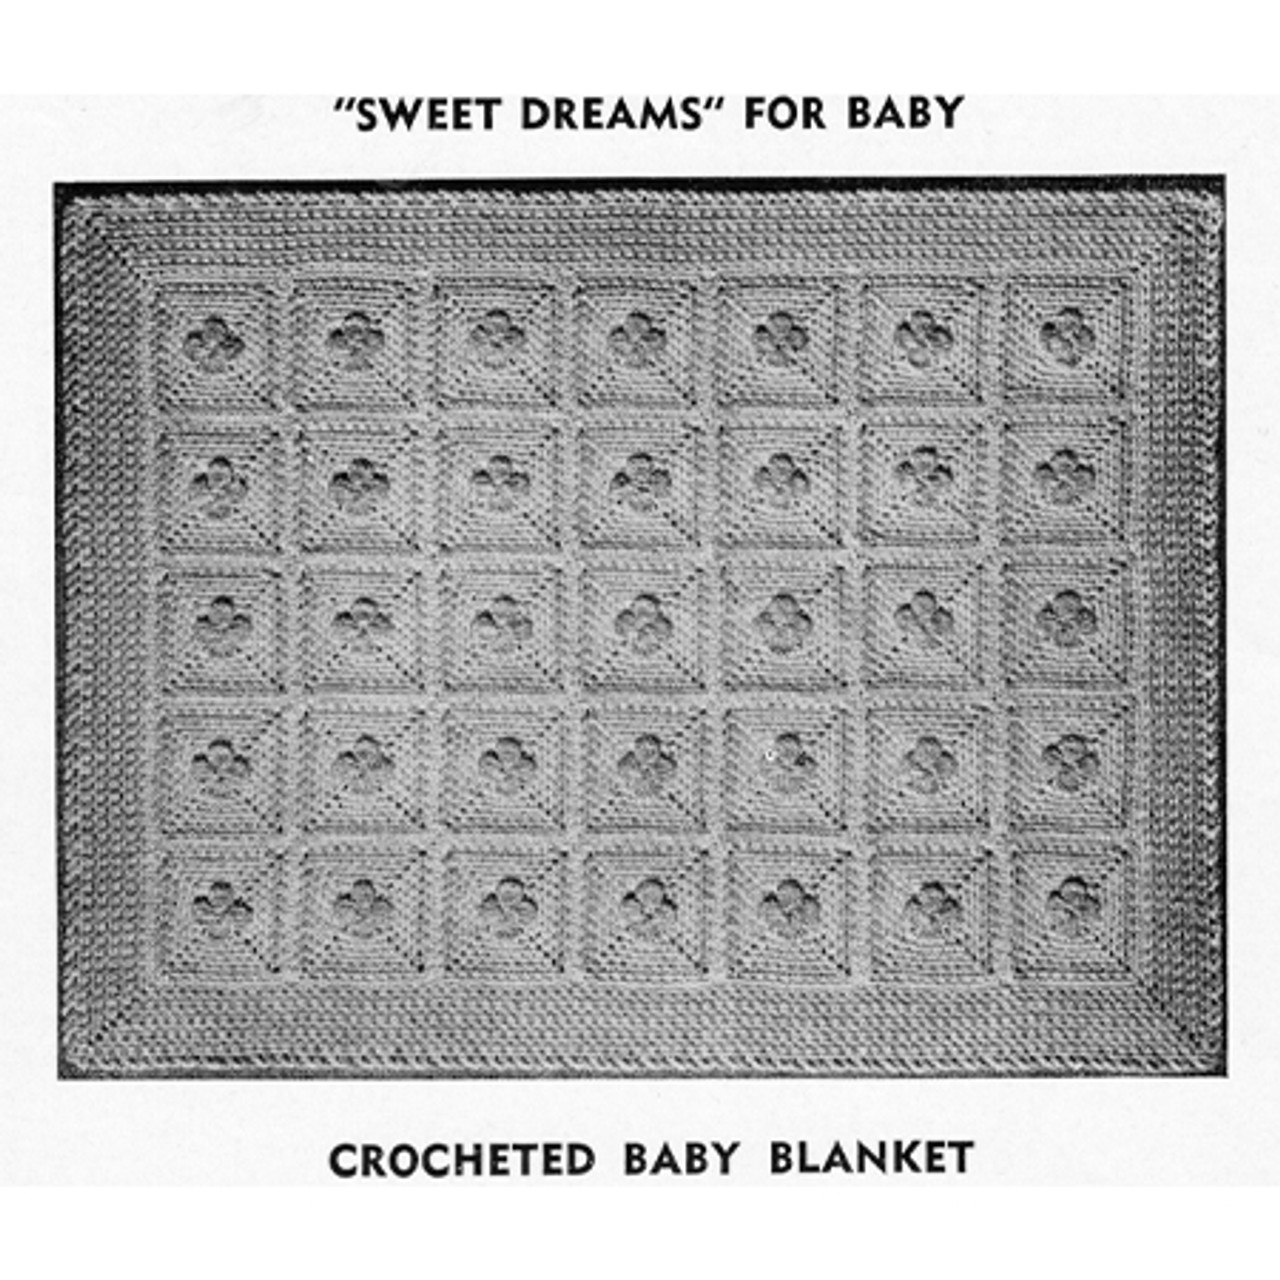 Crochet Baby Blanket Pattern With Flower Block Motif